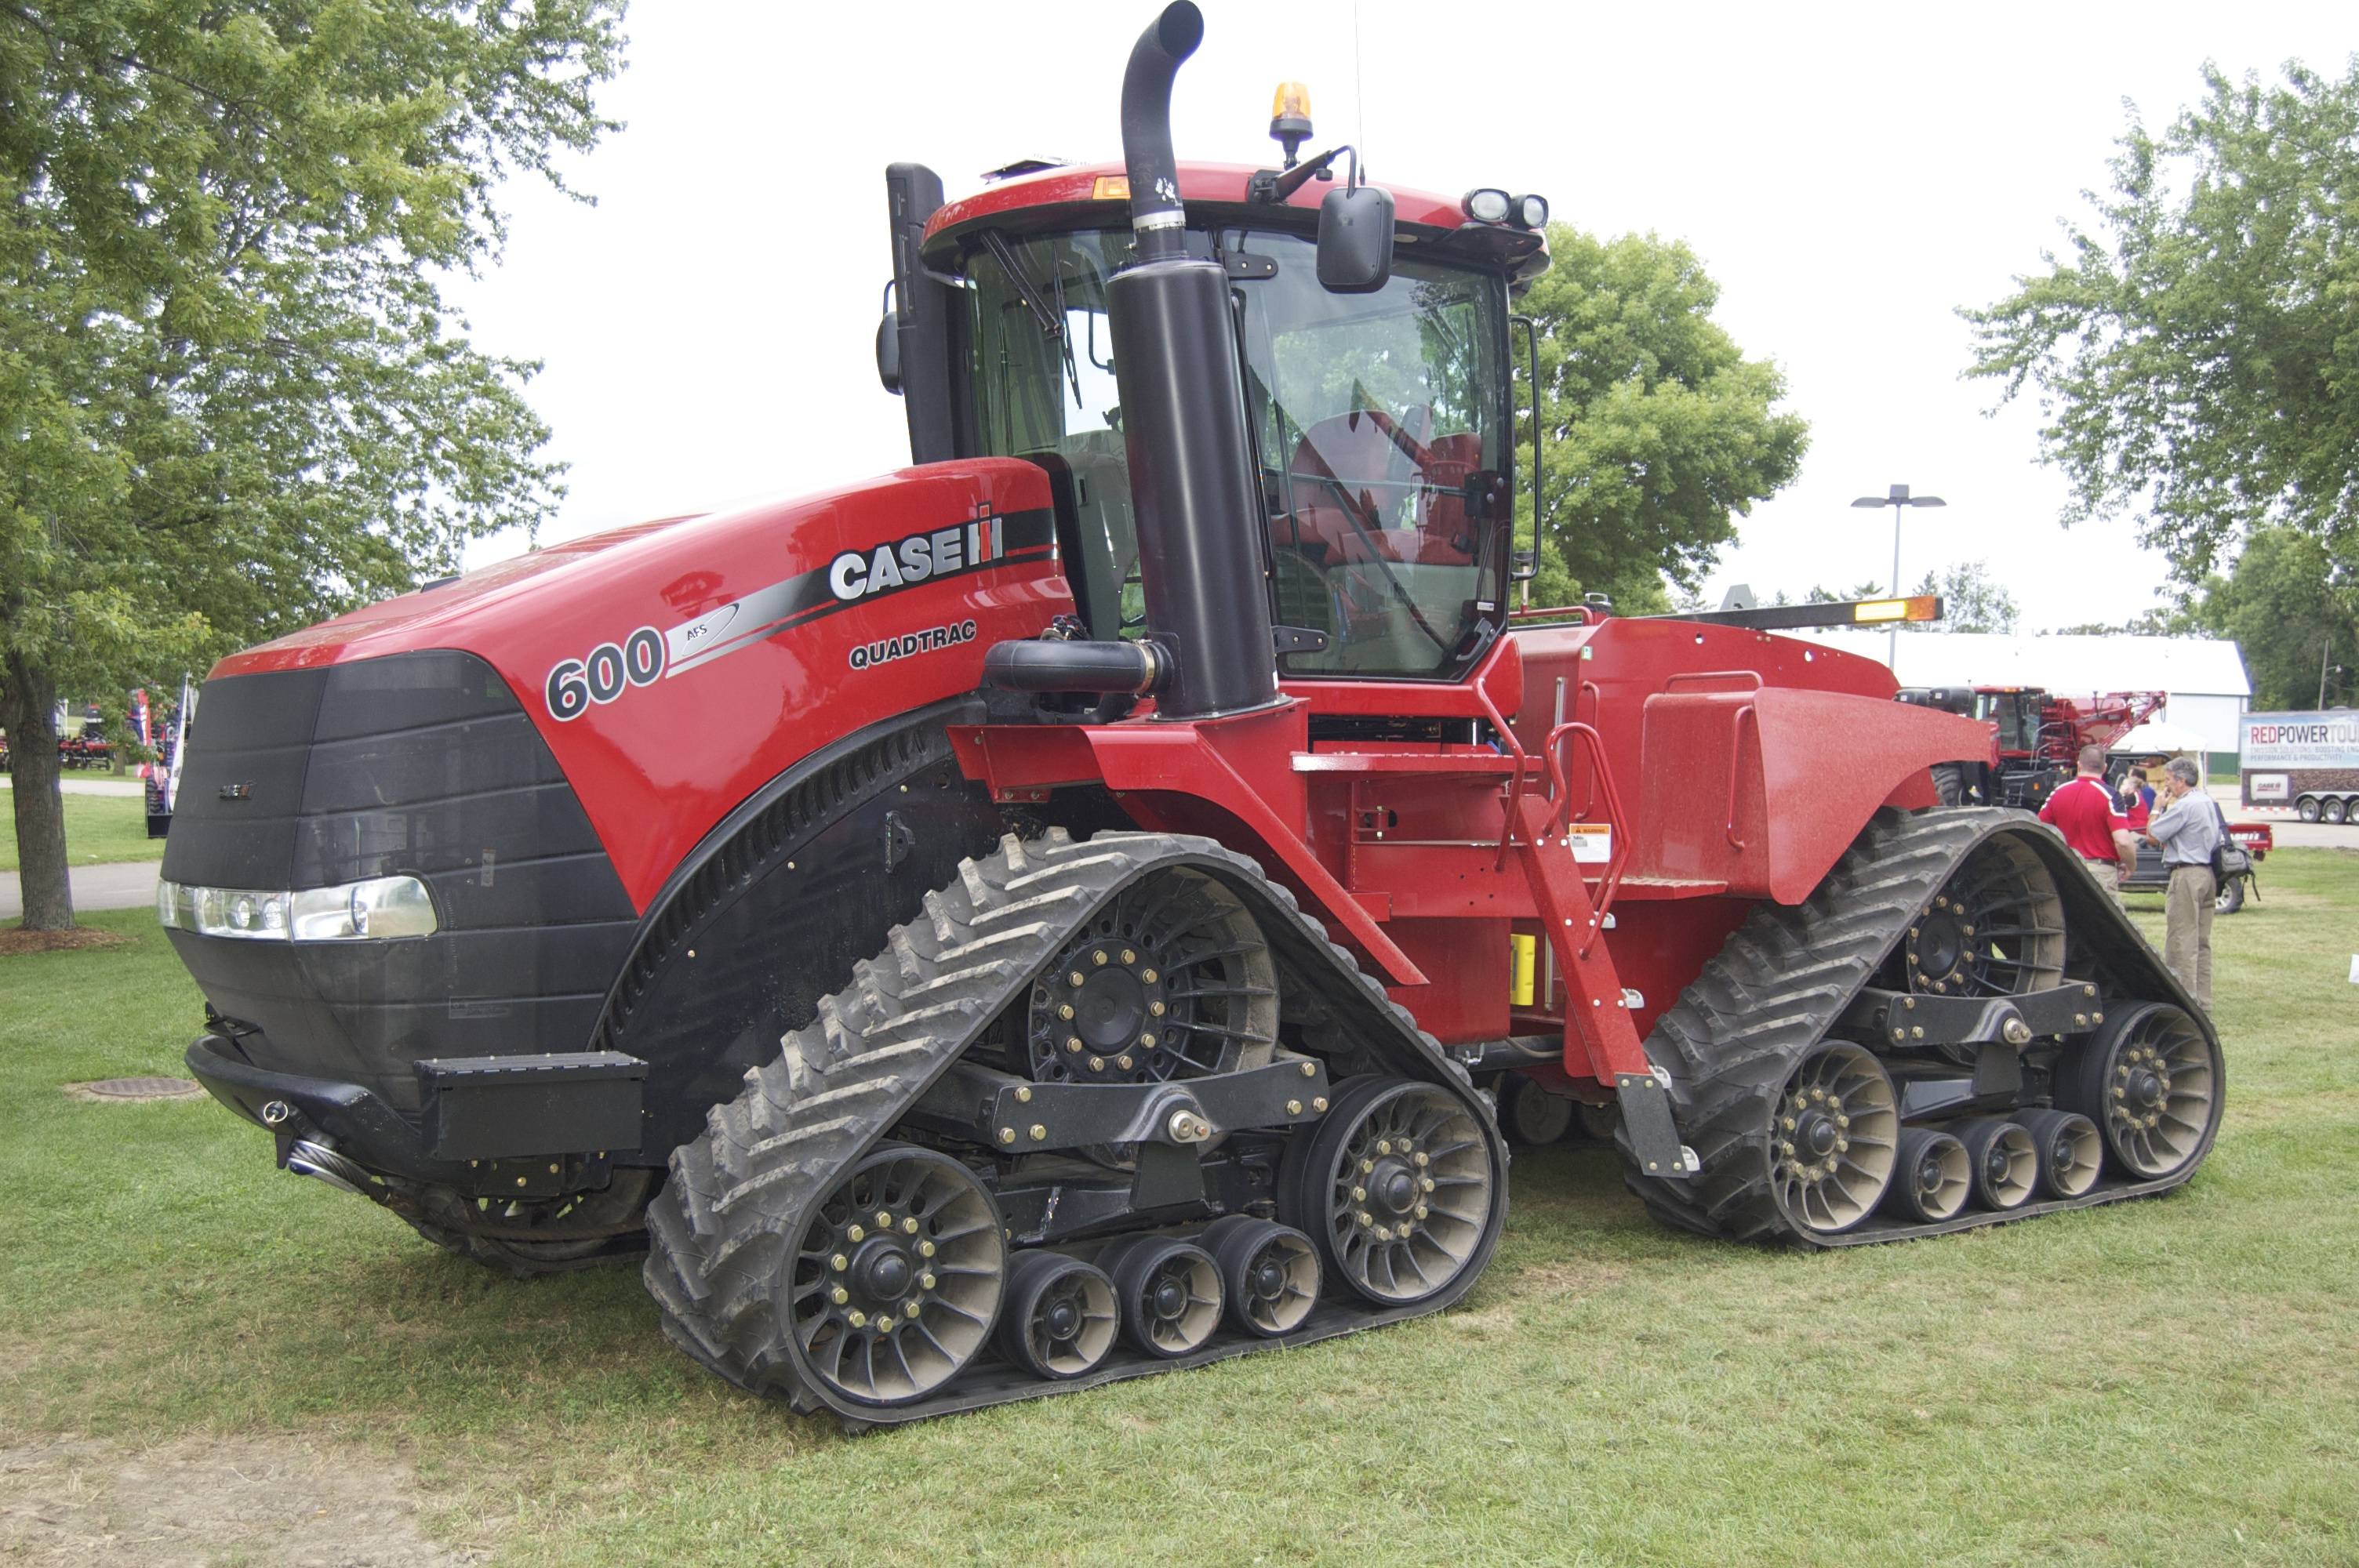 Case IH Steiger Rowtrac Tractors Fight Compaction, Offer Versatility.